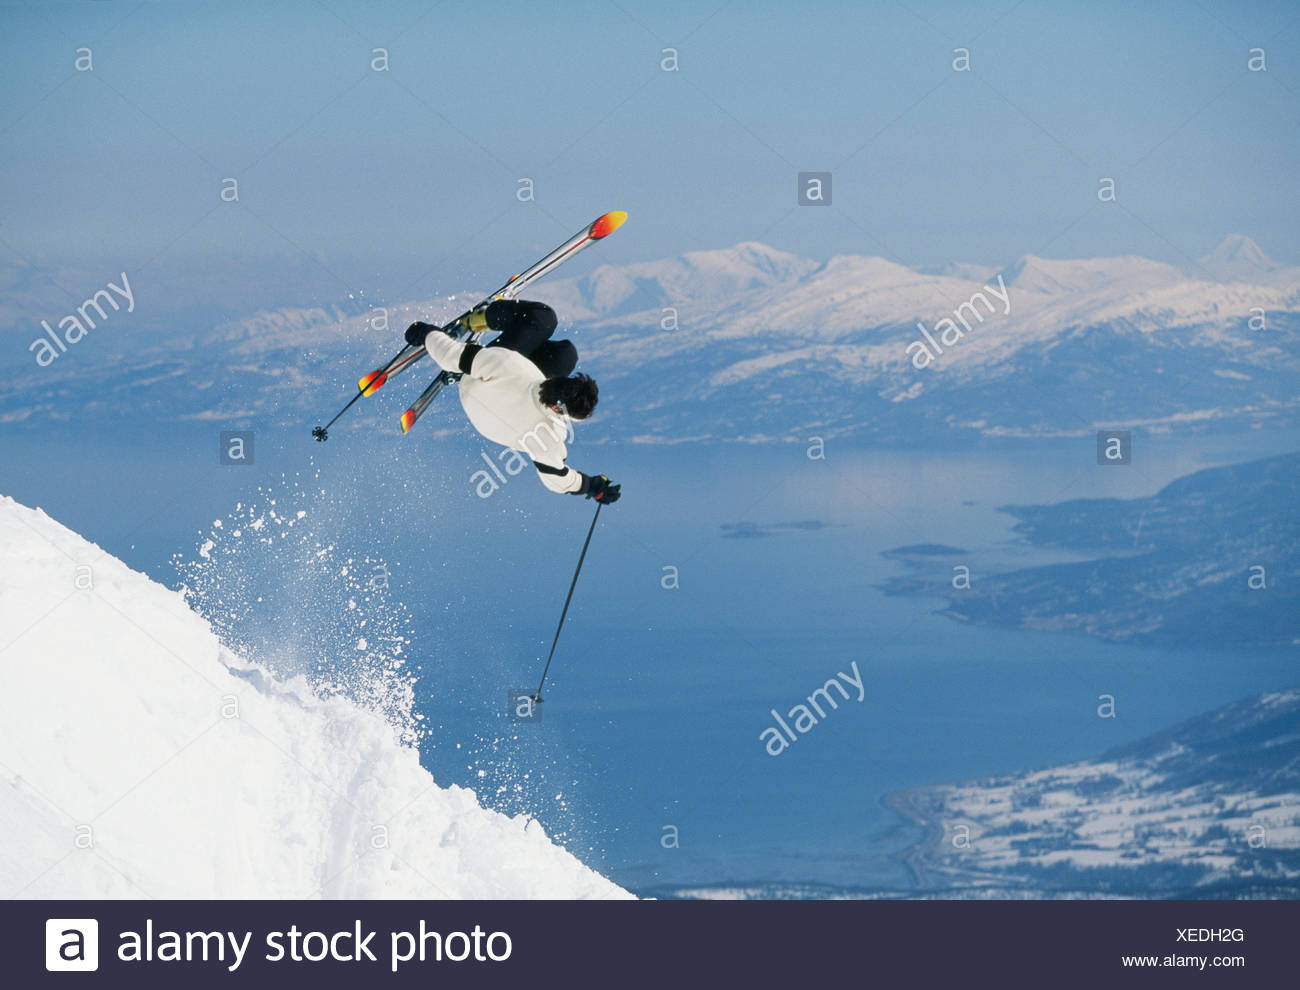 A skier, Narvik, Norway. - Stock Image